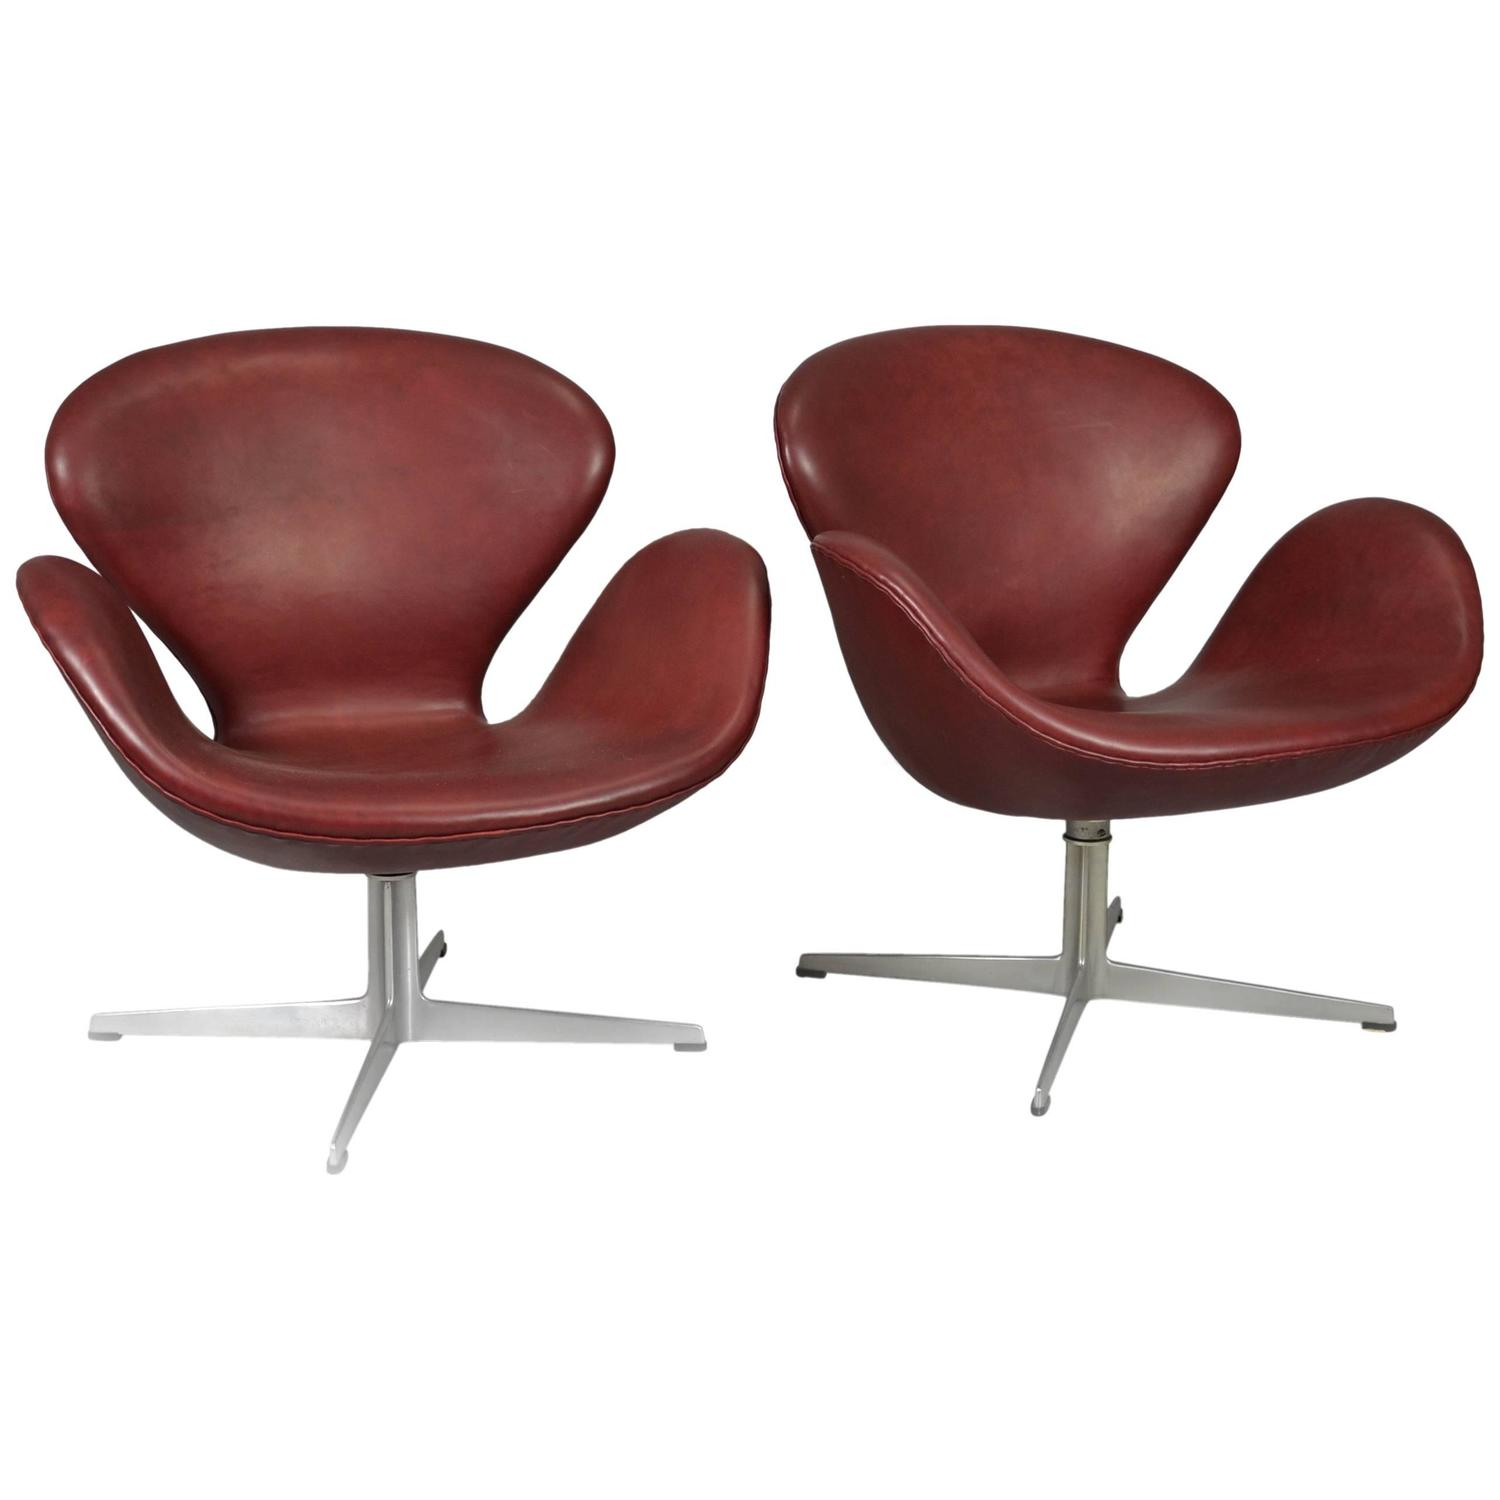 Pair of swan chairs by arne jacobsen in bordeaux leather for Swan chairs for sale